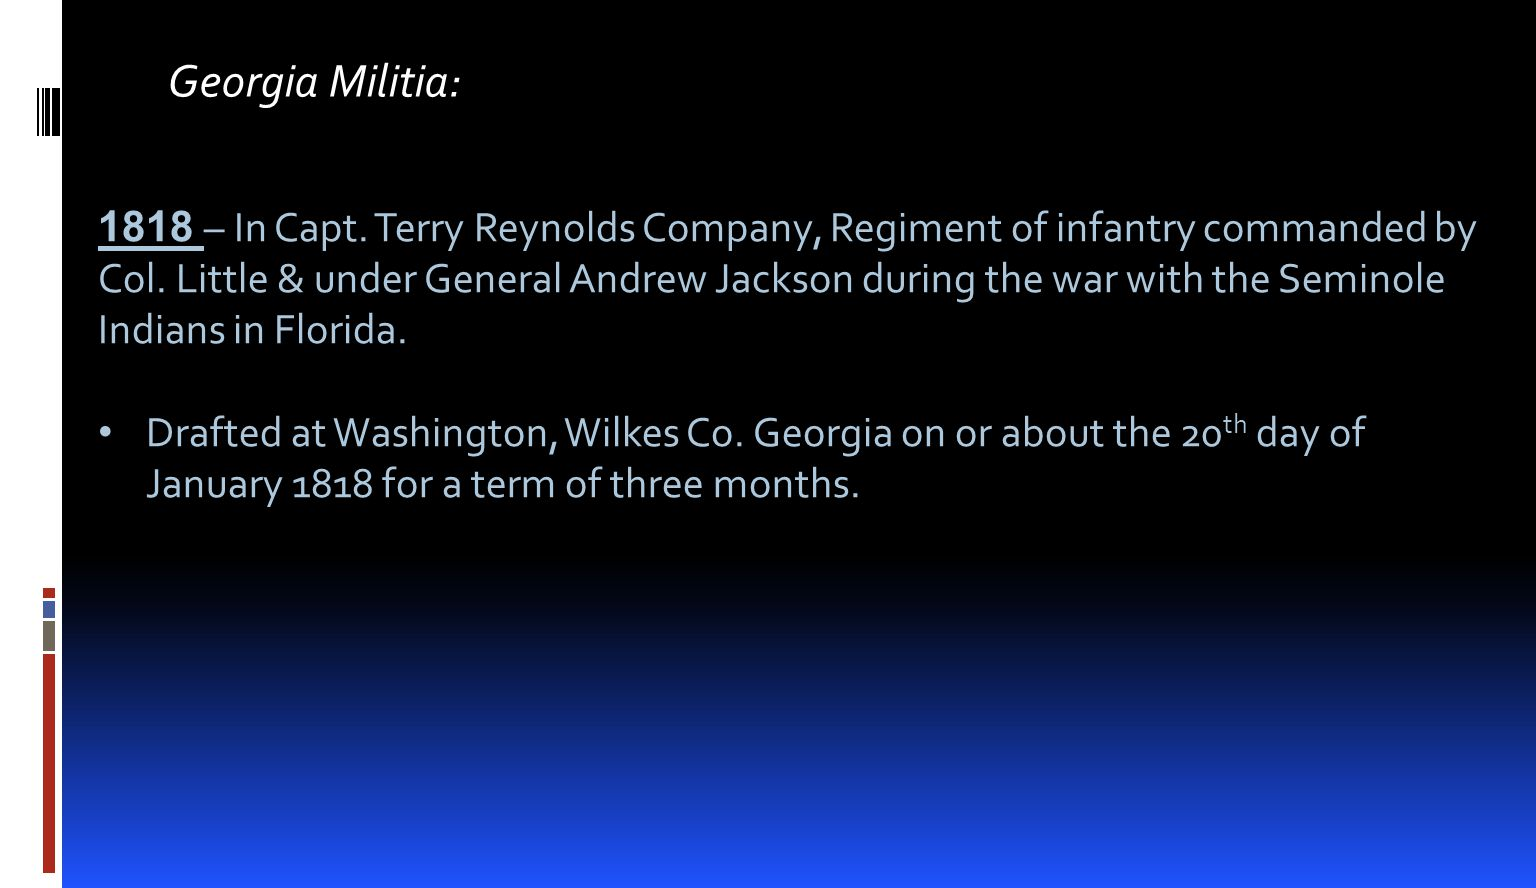 Georgia Militia: 1818 – In Capt. Terry Reynolds Company, Regiment of infantry commanded by Col. Little & under General Andrew Jackson during the war w